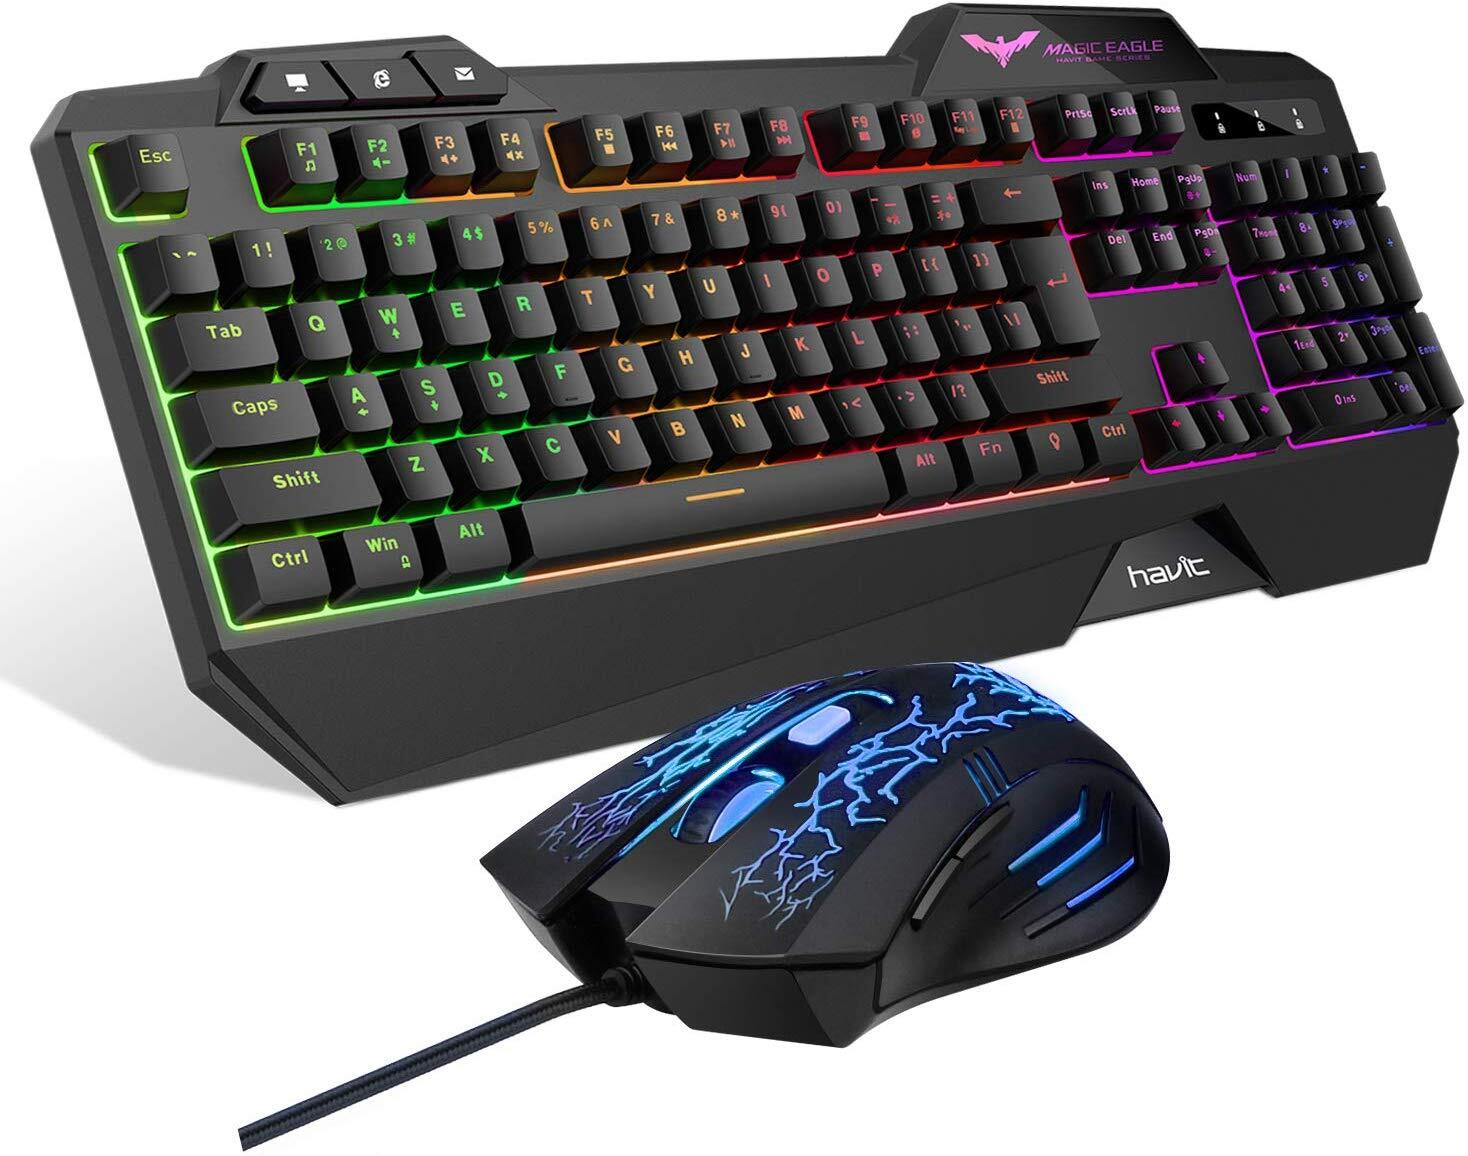 HAVIT Gaming Keyboard Mouse Headset & Mouse Pad Kit